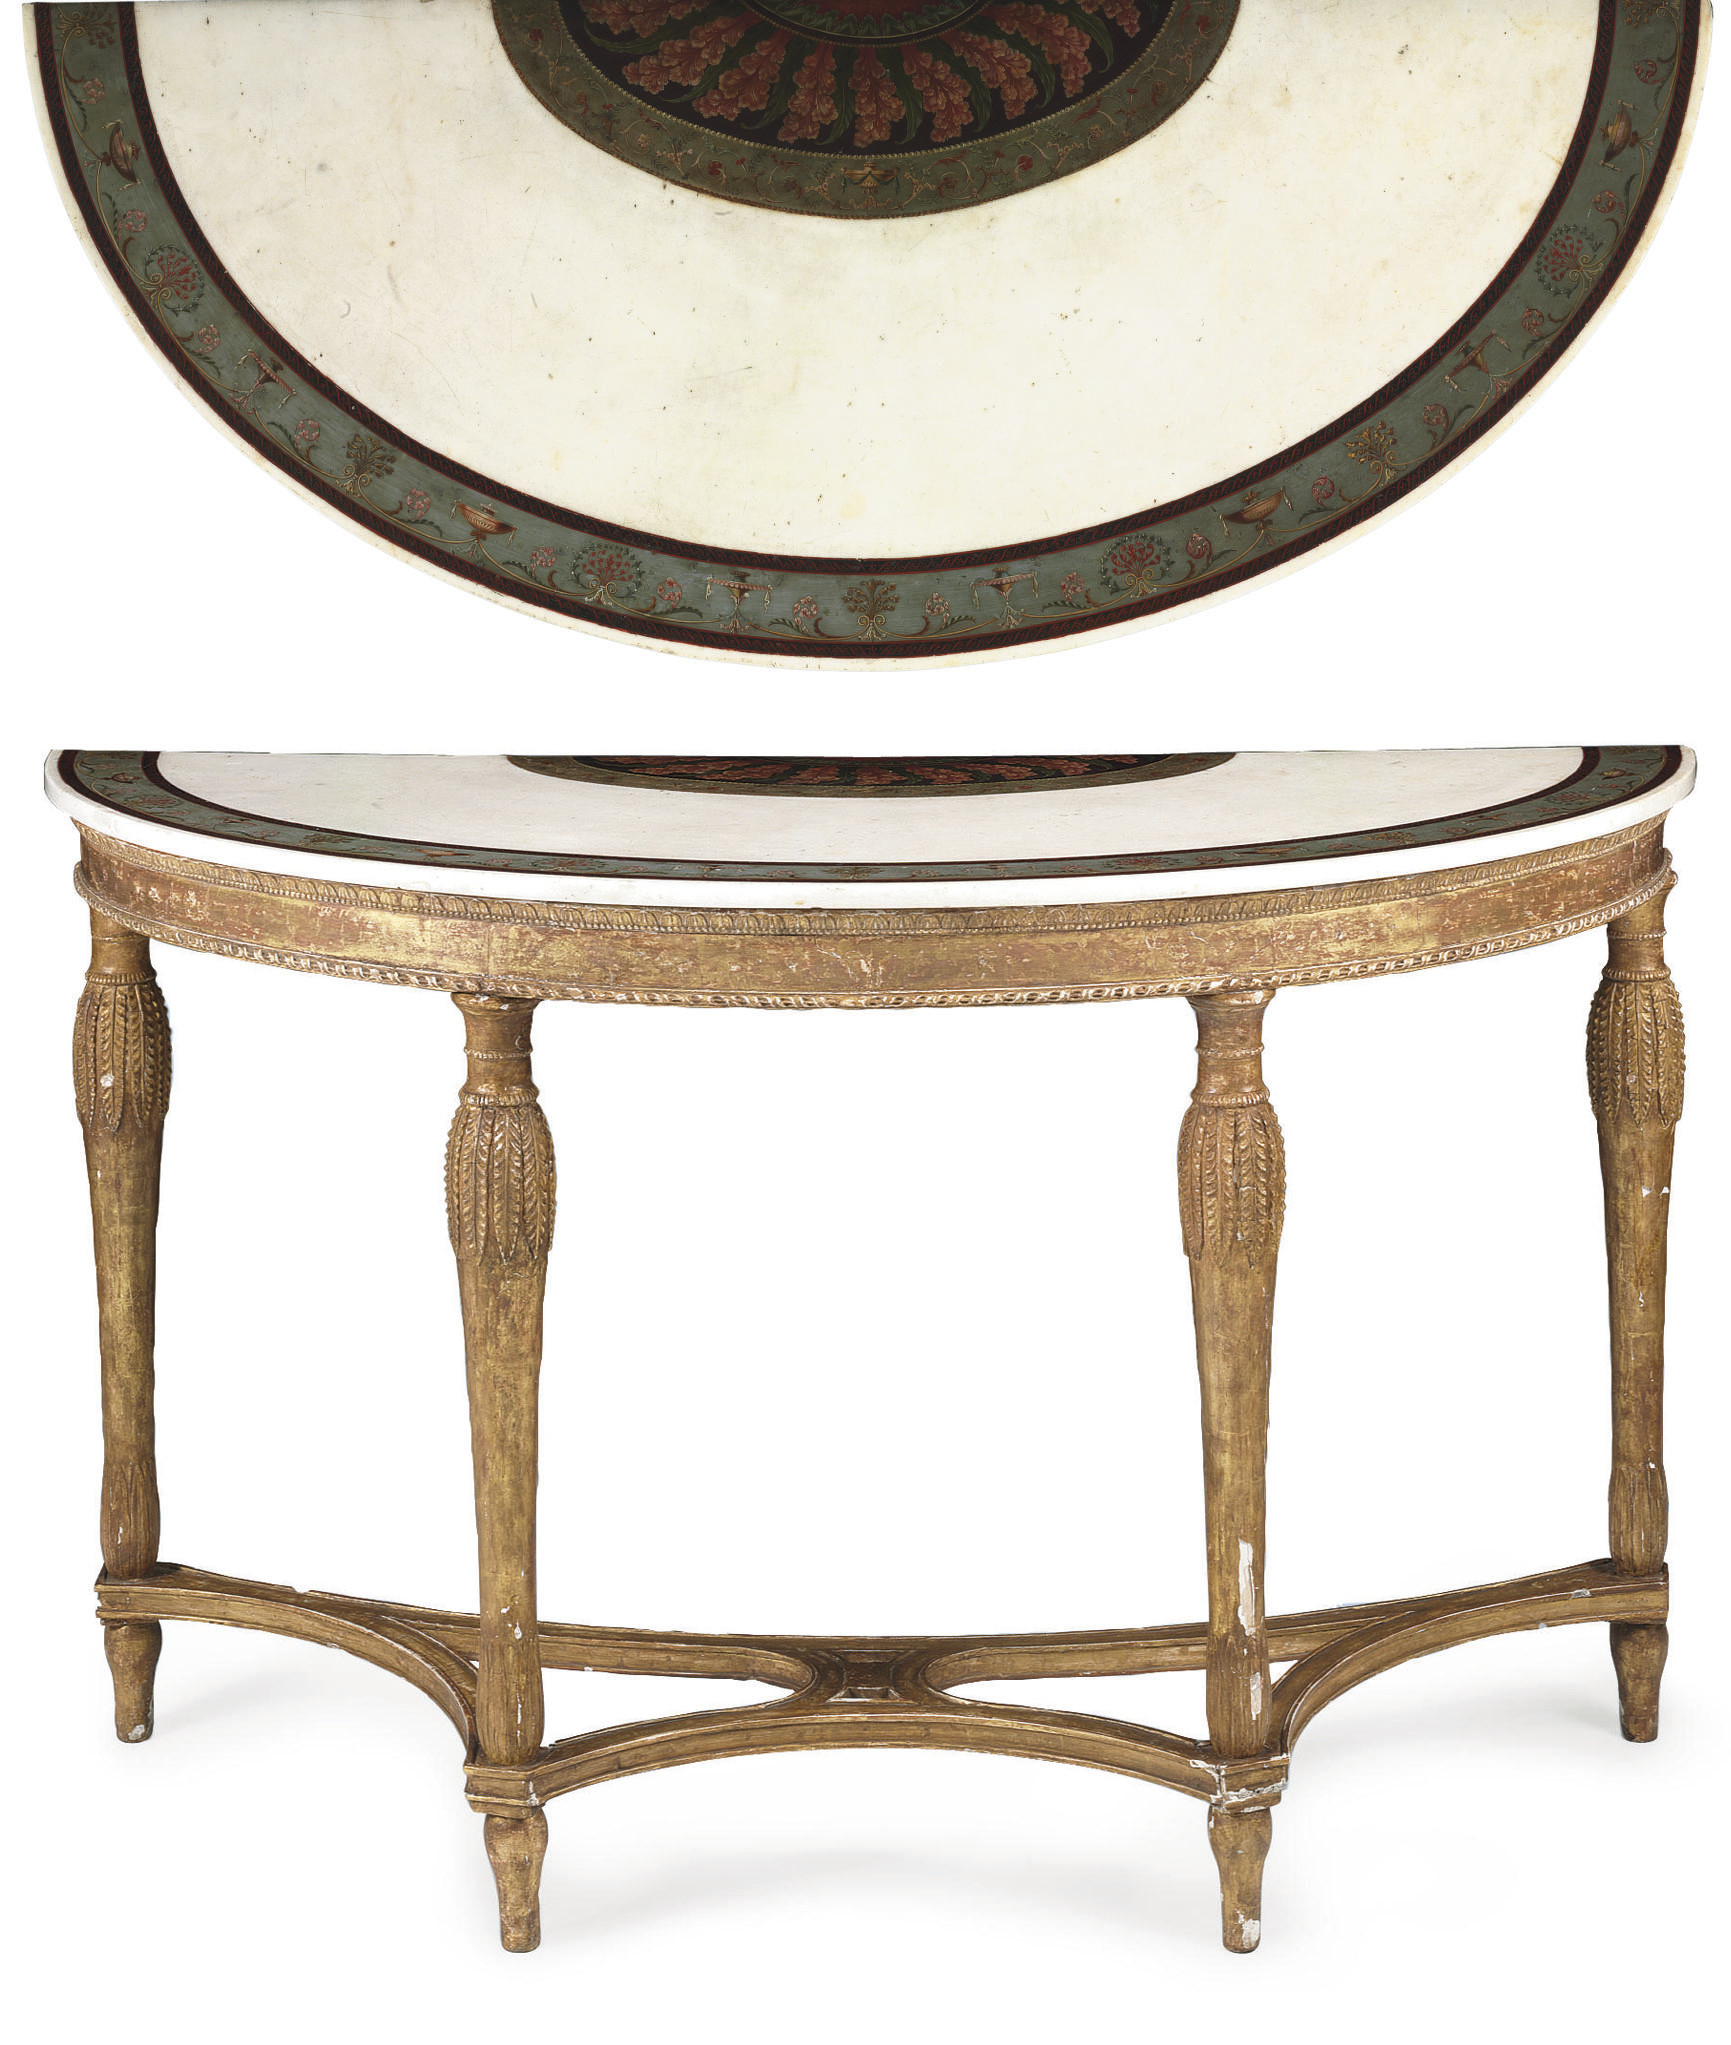 A GEORGE III GILTWOOD, GILT-COMPOSITION AND POLYCHROME-PAINTED MARBLE SIDE TABLE